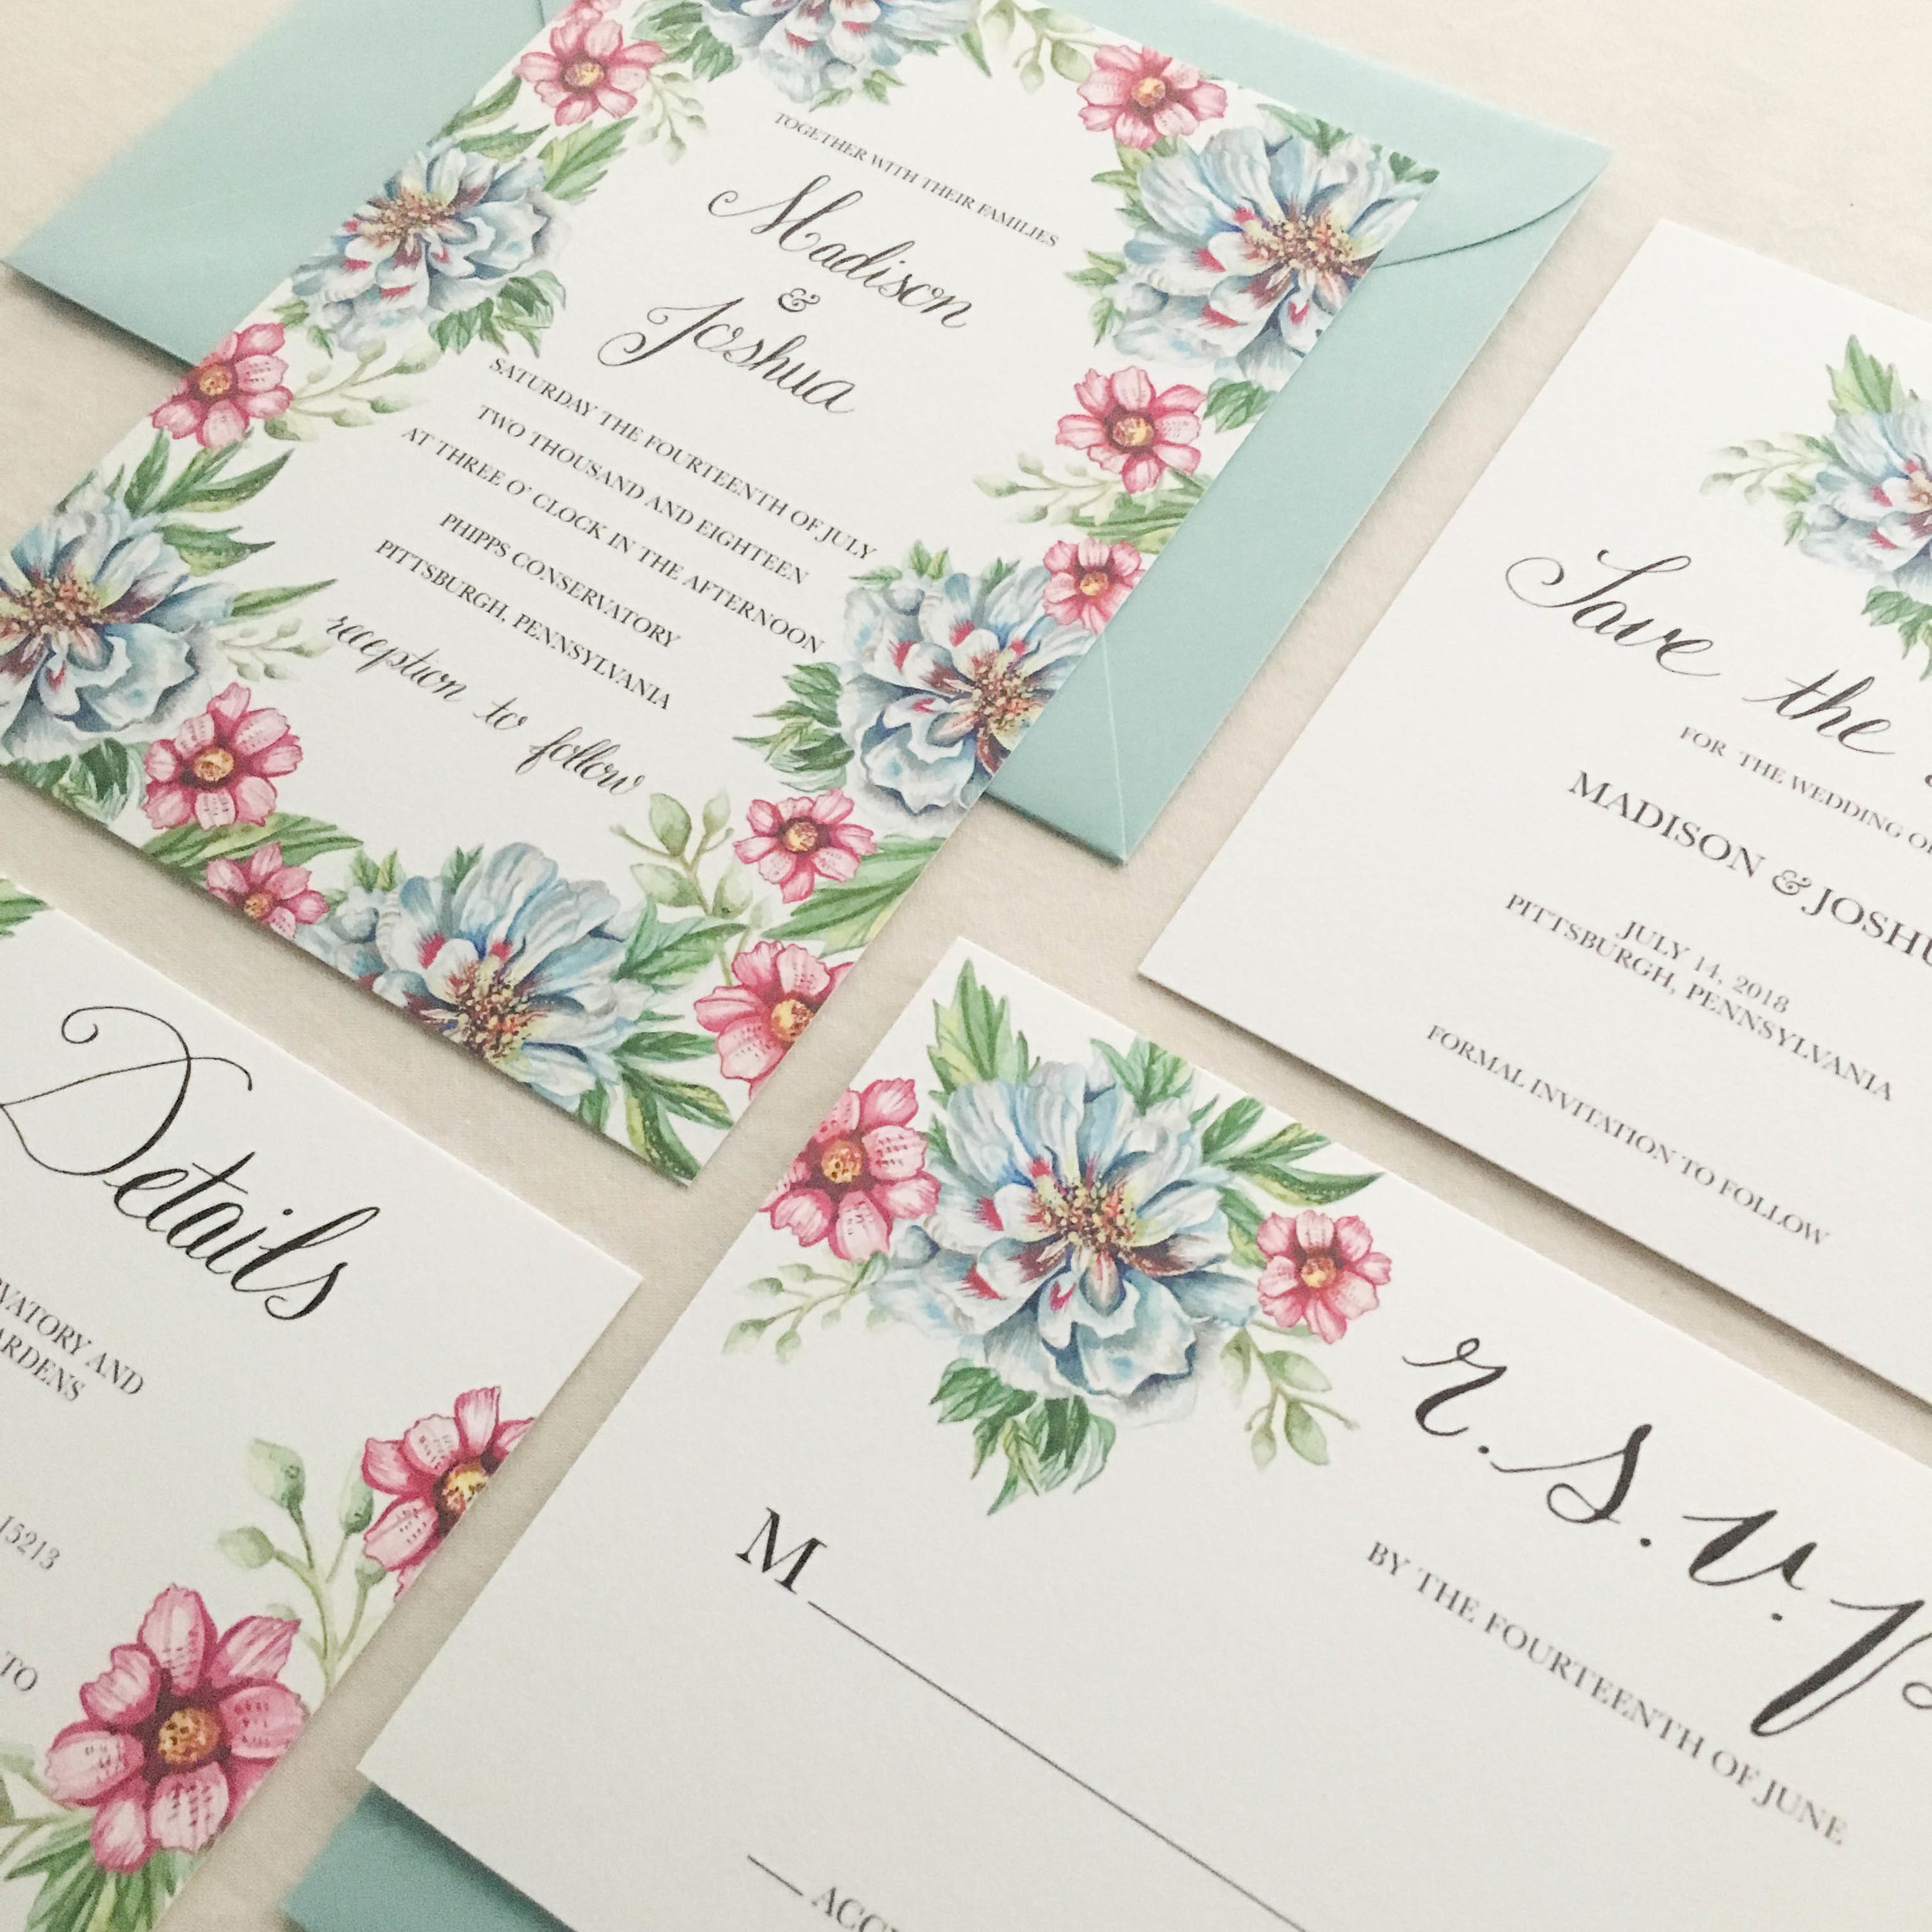 Janice Nelson Made in USA floral border wedding stationery with blue peonies, pink blossoms, and green leaves semi-custom hand painted watercolor wedding invitation details and RSVP custom wedding